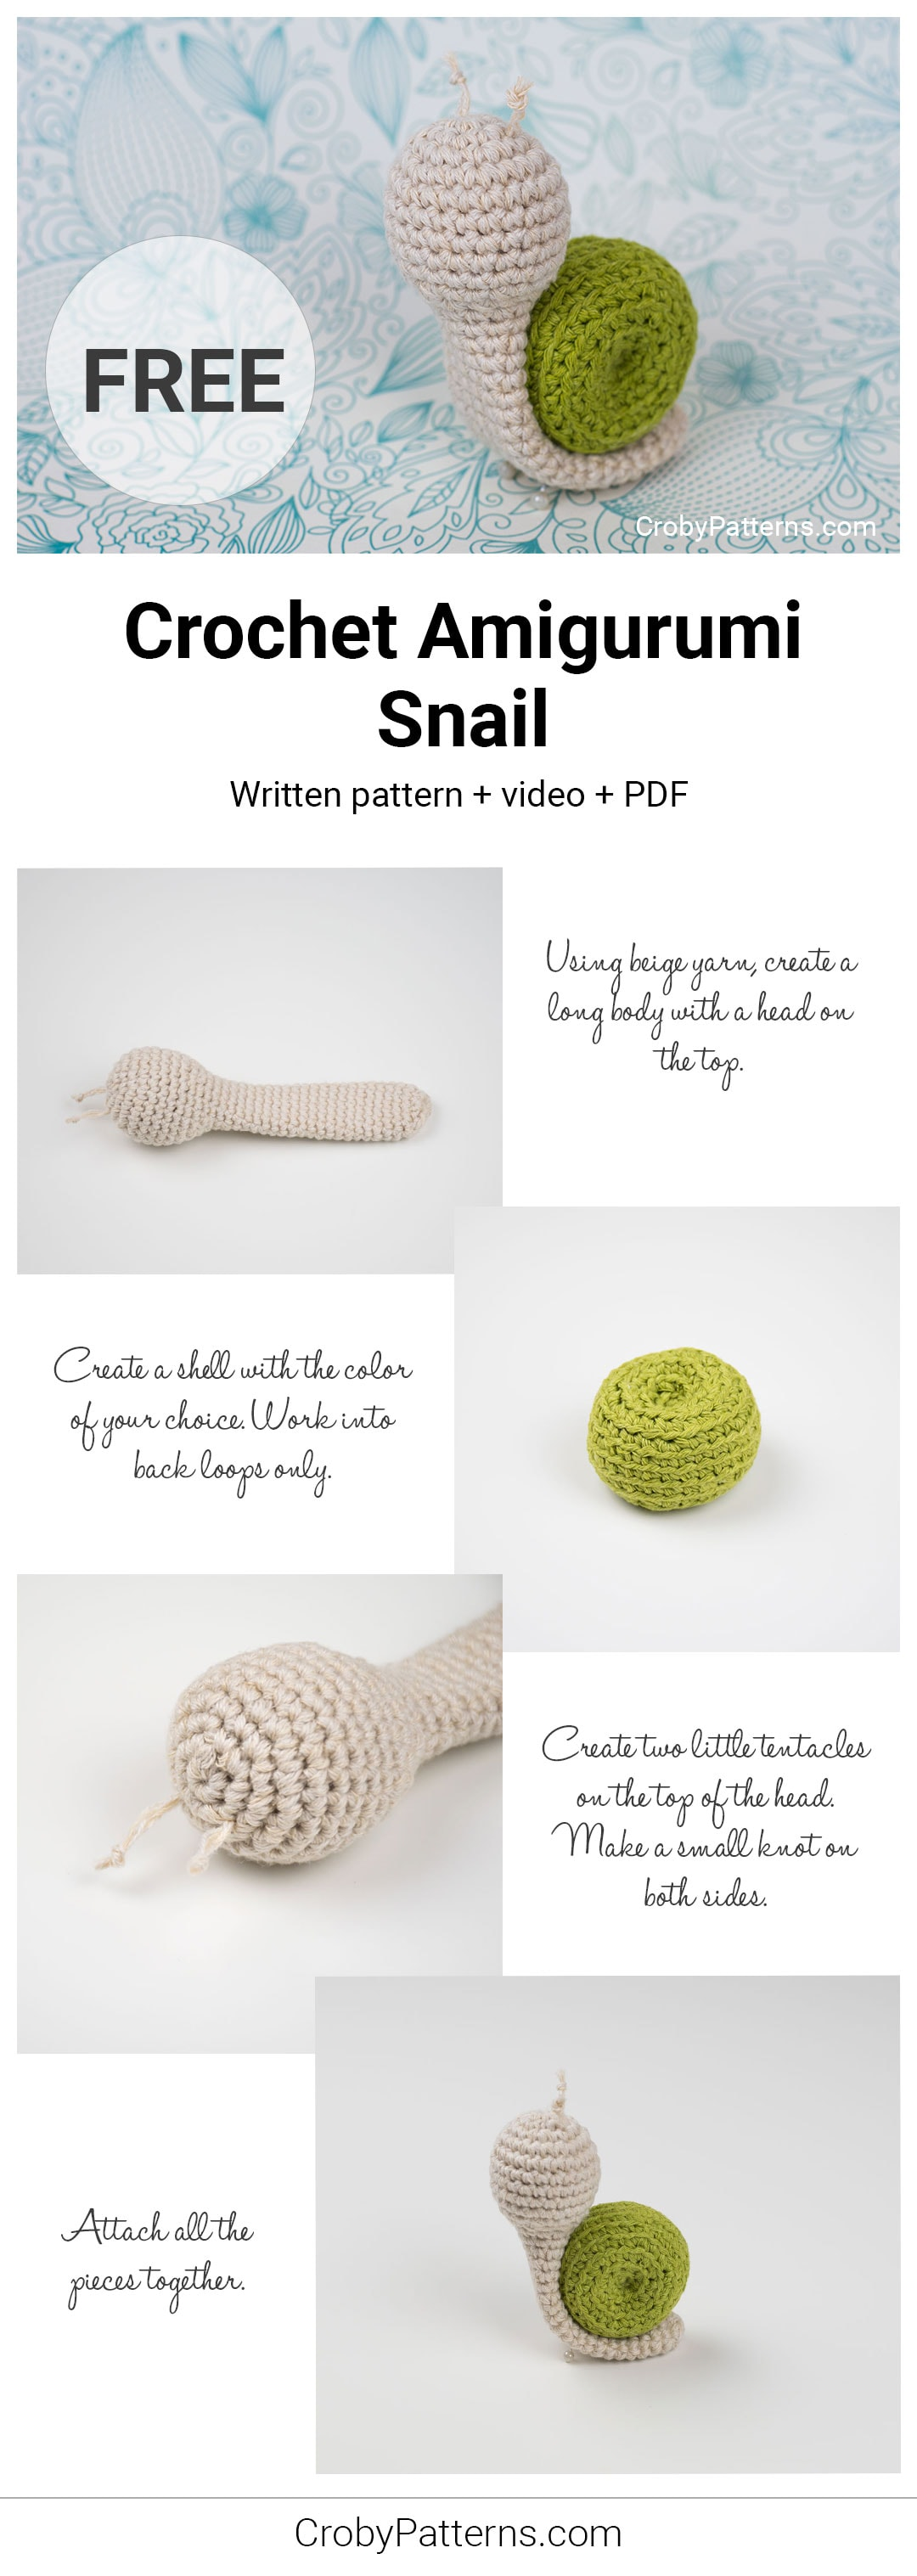 Crochet Amigurumi Snail by Croby Patterns